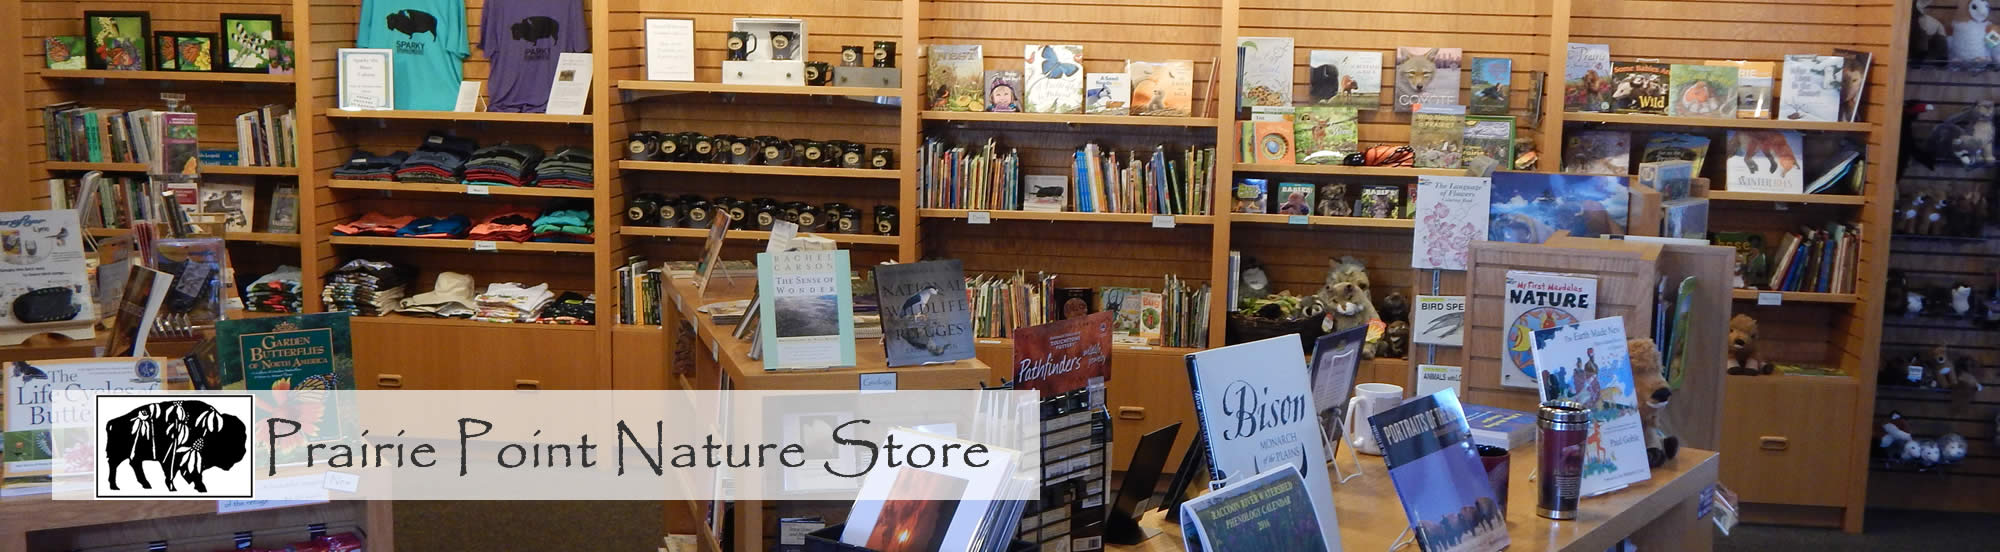 Friends of Neal Smith National Wildlife Refuge Prairie Point Nature Store